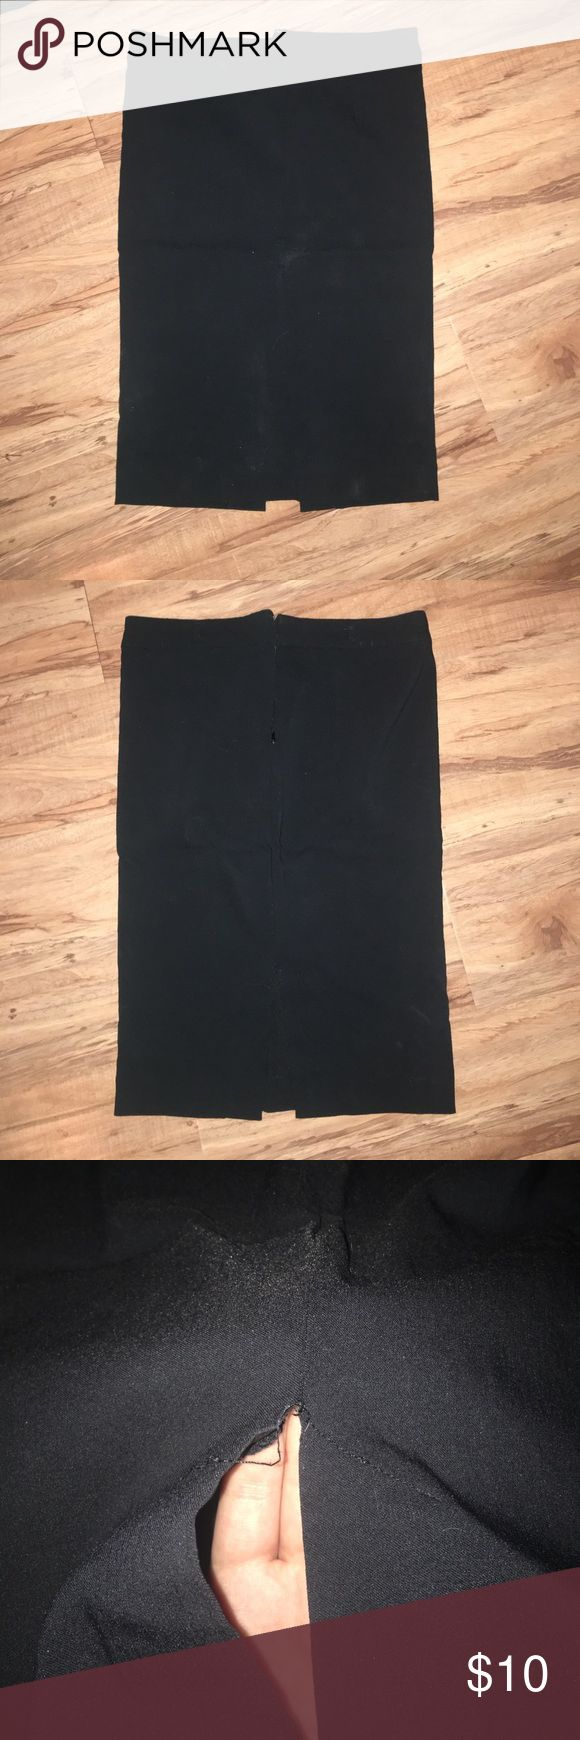 Pencil skirt Black pencil skirt, good condition just too small for me. The slit in the back is frayed a little but great condition otherwise. Skirts Pencil